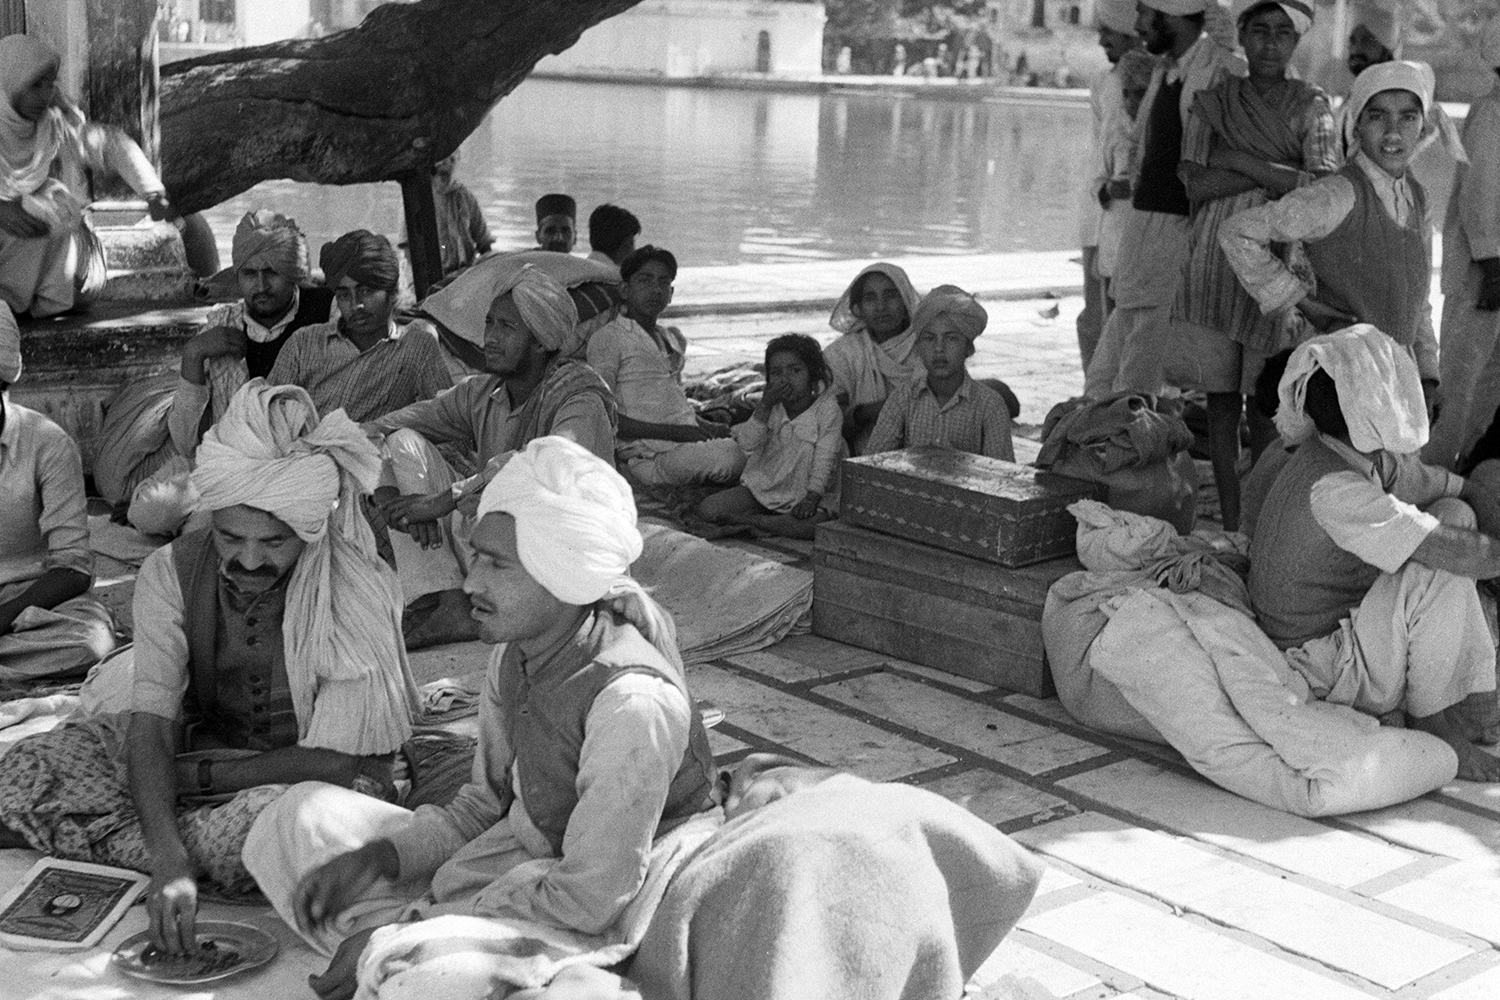 Refugees at the Golden Temple in 1947